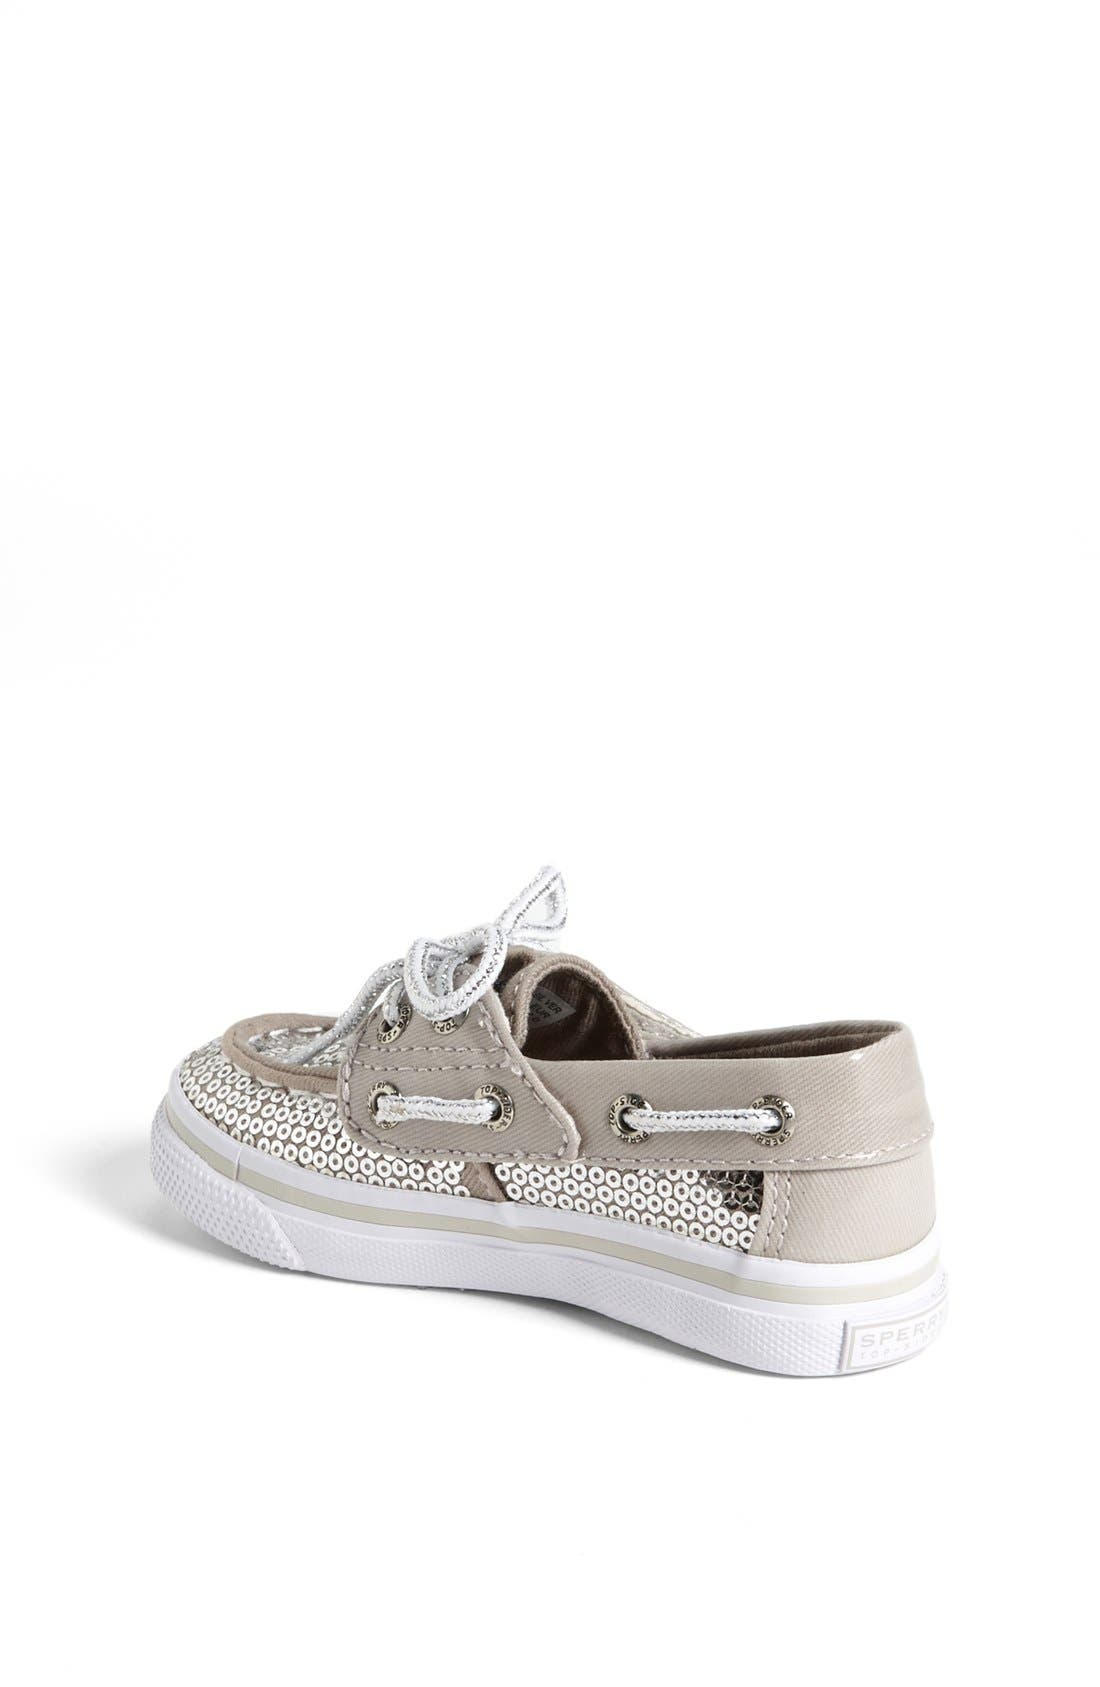 Alternate Image 2  - Sperry Top-Sider® Kids 'Bahama' Slip-On (Walker, Toddler, Little Kid & Big Kid)